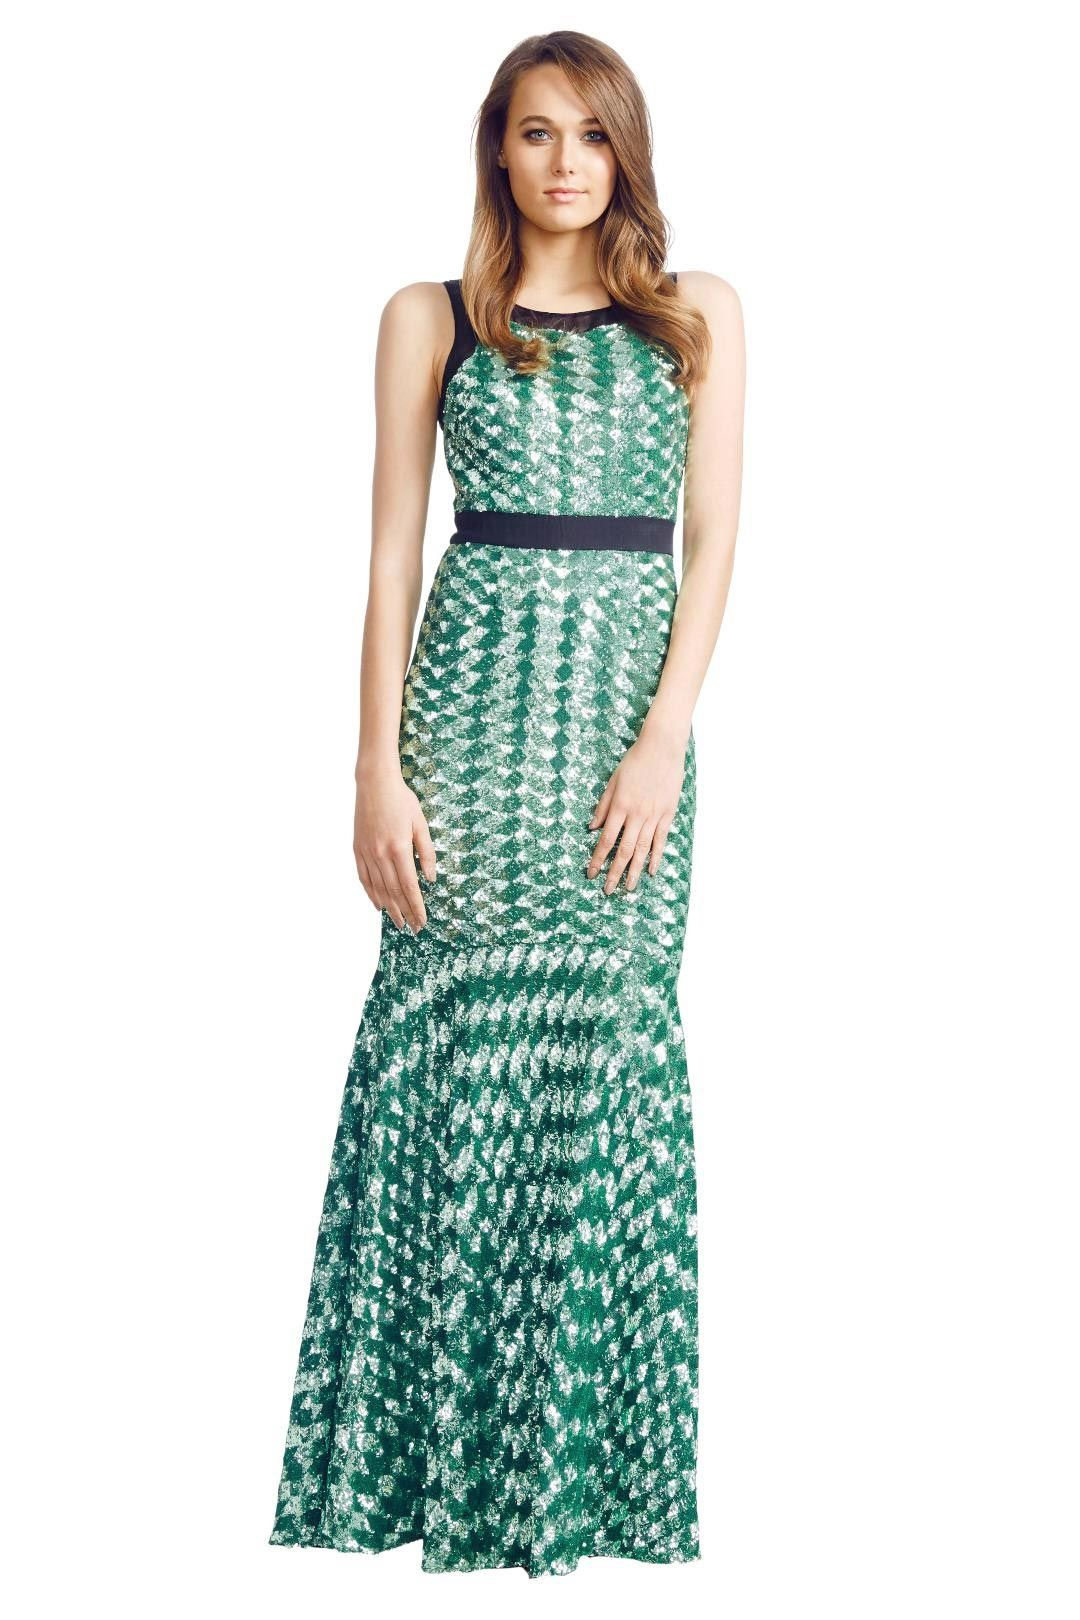 Badgley Mischka - Geometric Sequin - Green - Front